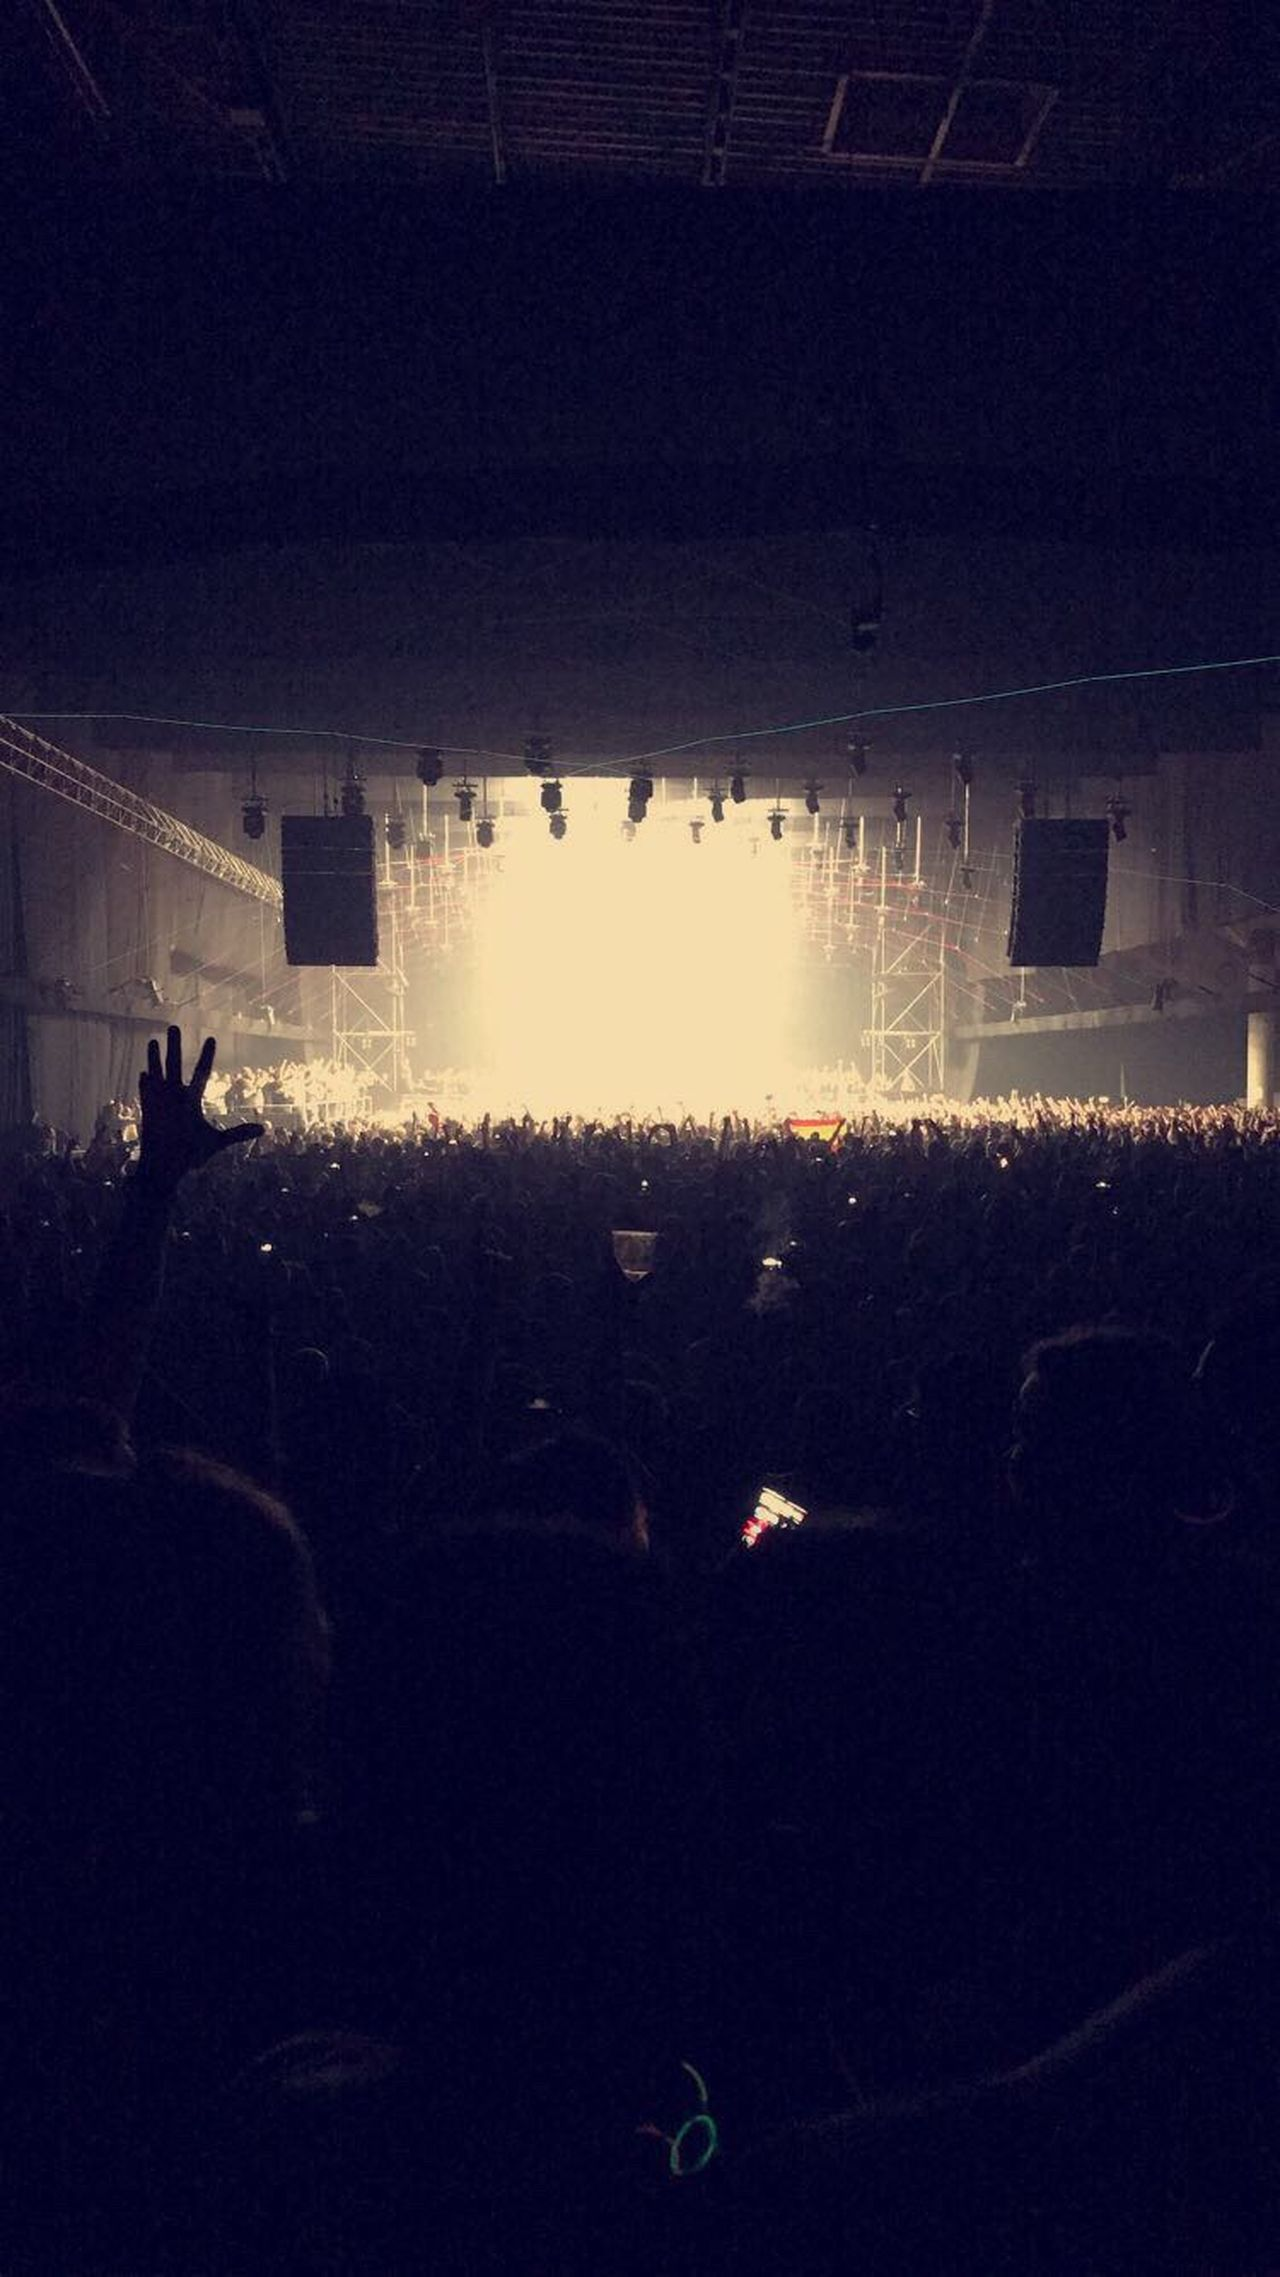 Large Group Of People Illuminated Night Audience Arts Culture And Entertainment Event Crowd Real People Silhouette Leisure Activity Music Performance Enjoyment Stage - Performance Space Men Nightlife Lifestyles Stage Light Popular Music Concert Indoors  Night Club Maceo Plex Time Warp Mannheim